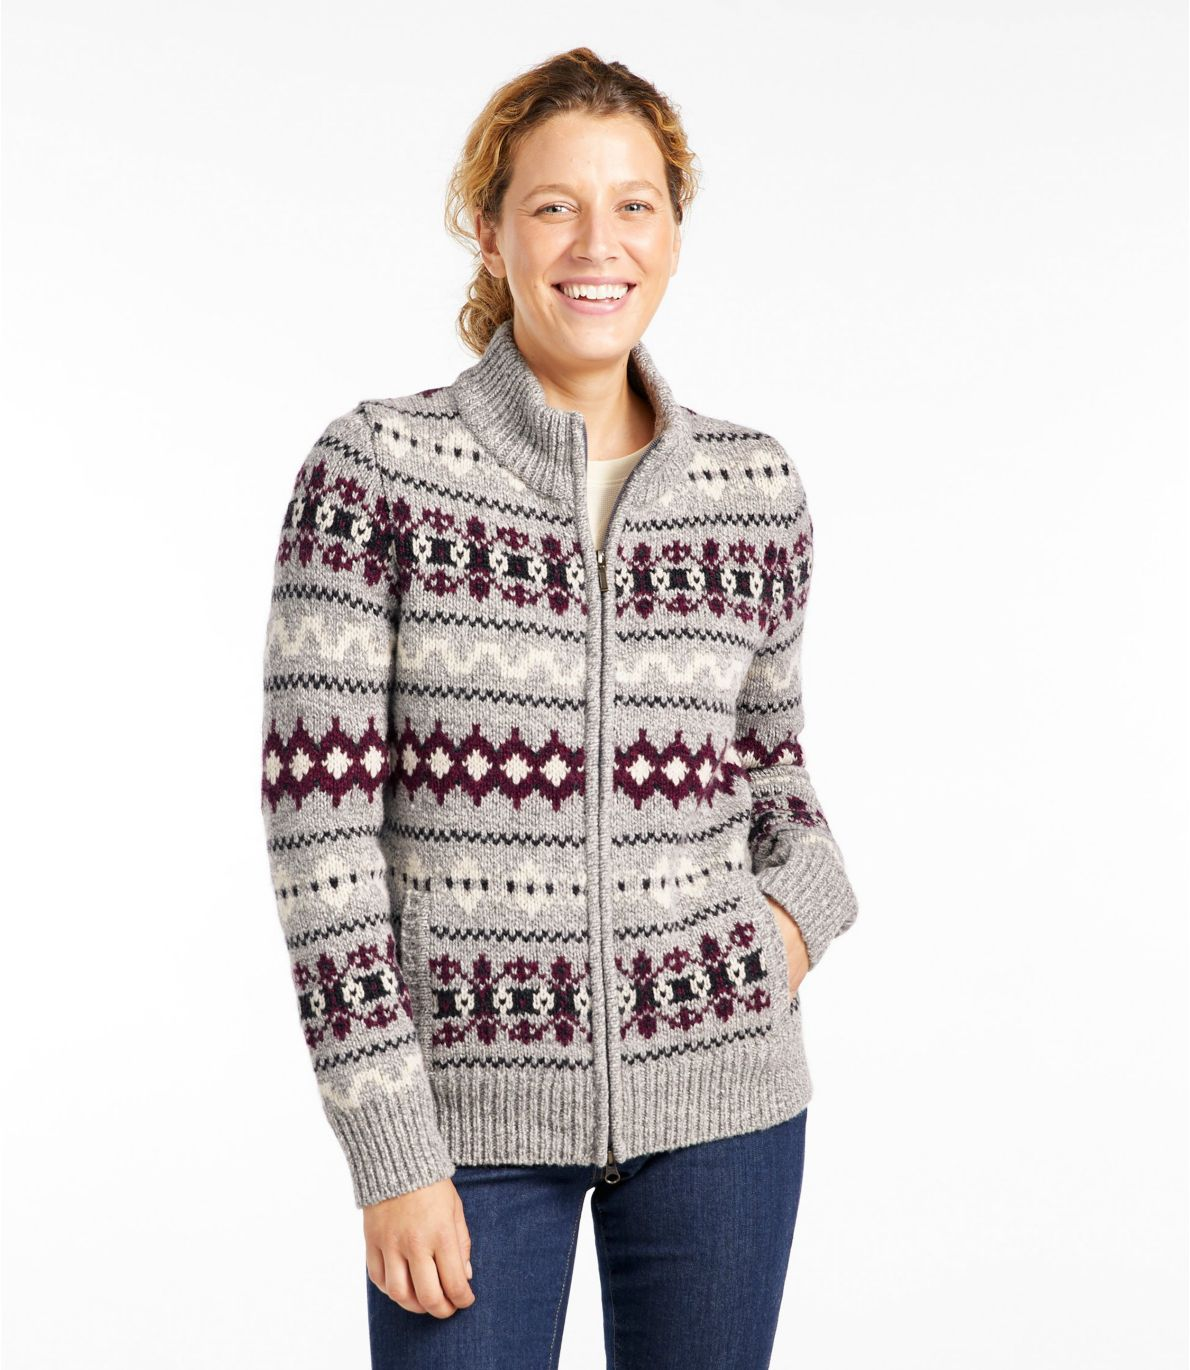 Women's Bean's Classic Ragg Wool Sweater, Zip Cardigan Vintage Fair Isle